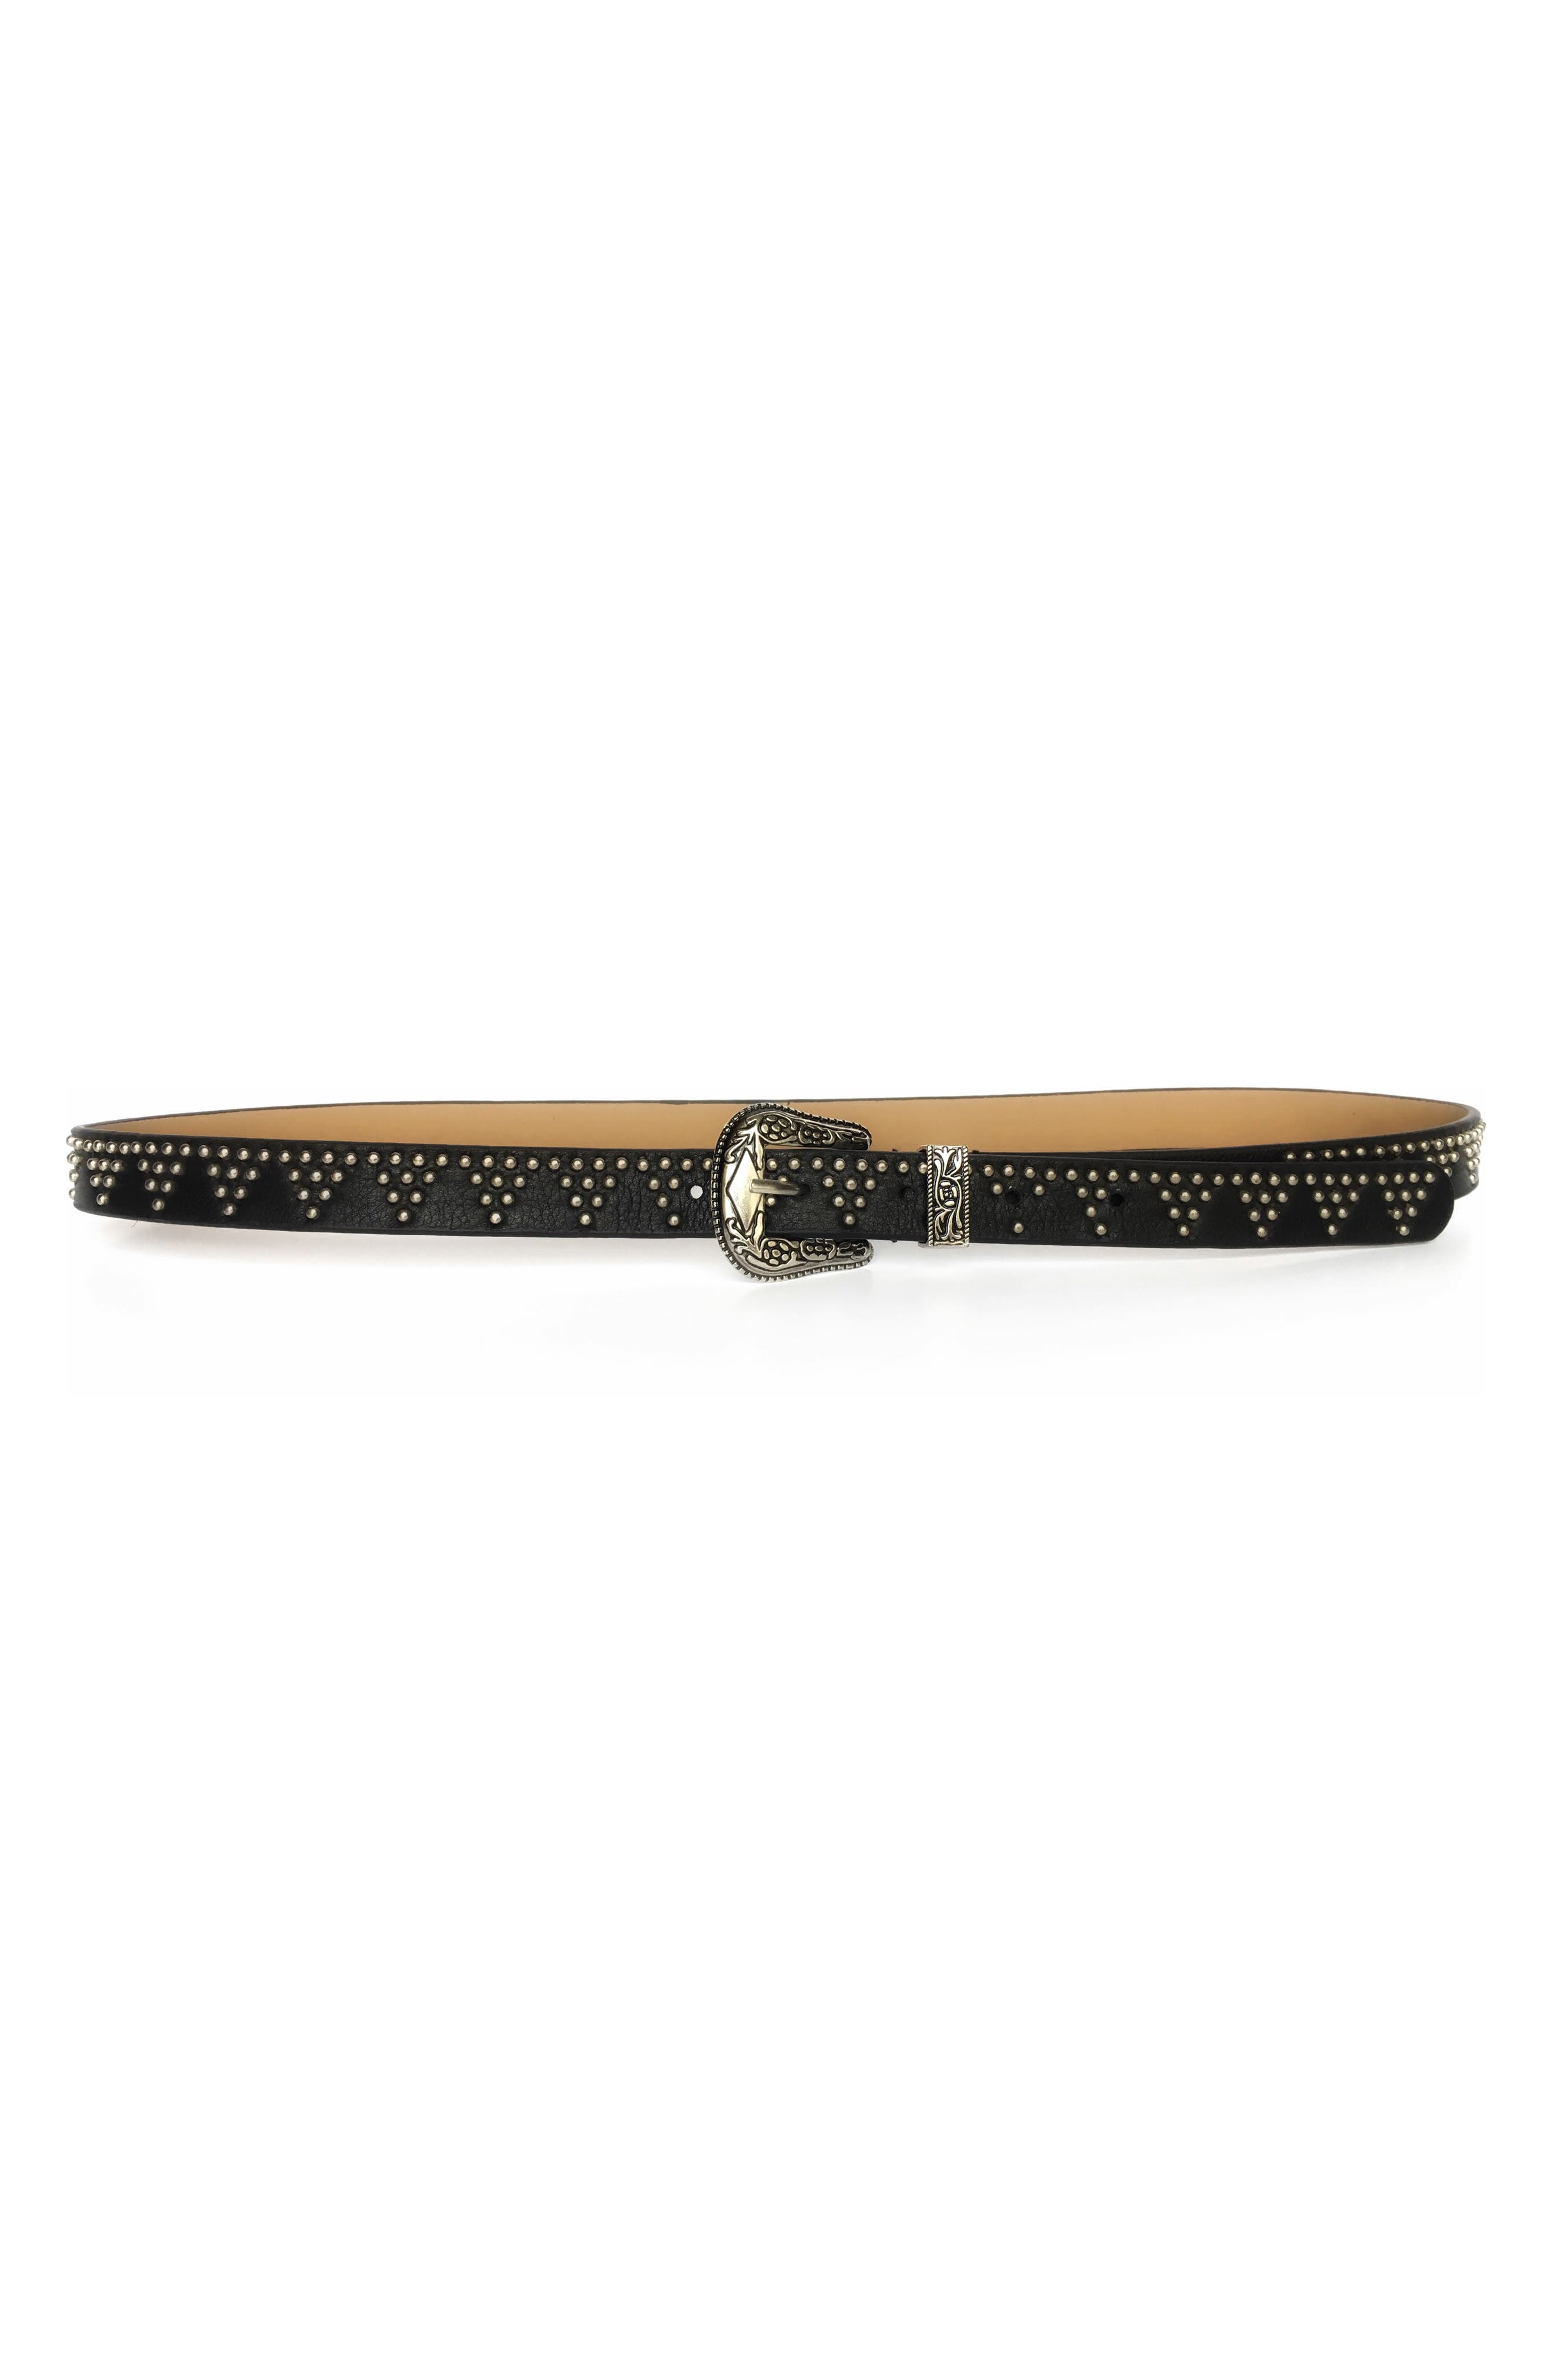 LOVESTRENGTH Pilar Belt, Main, color, 001